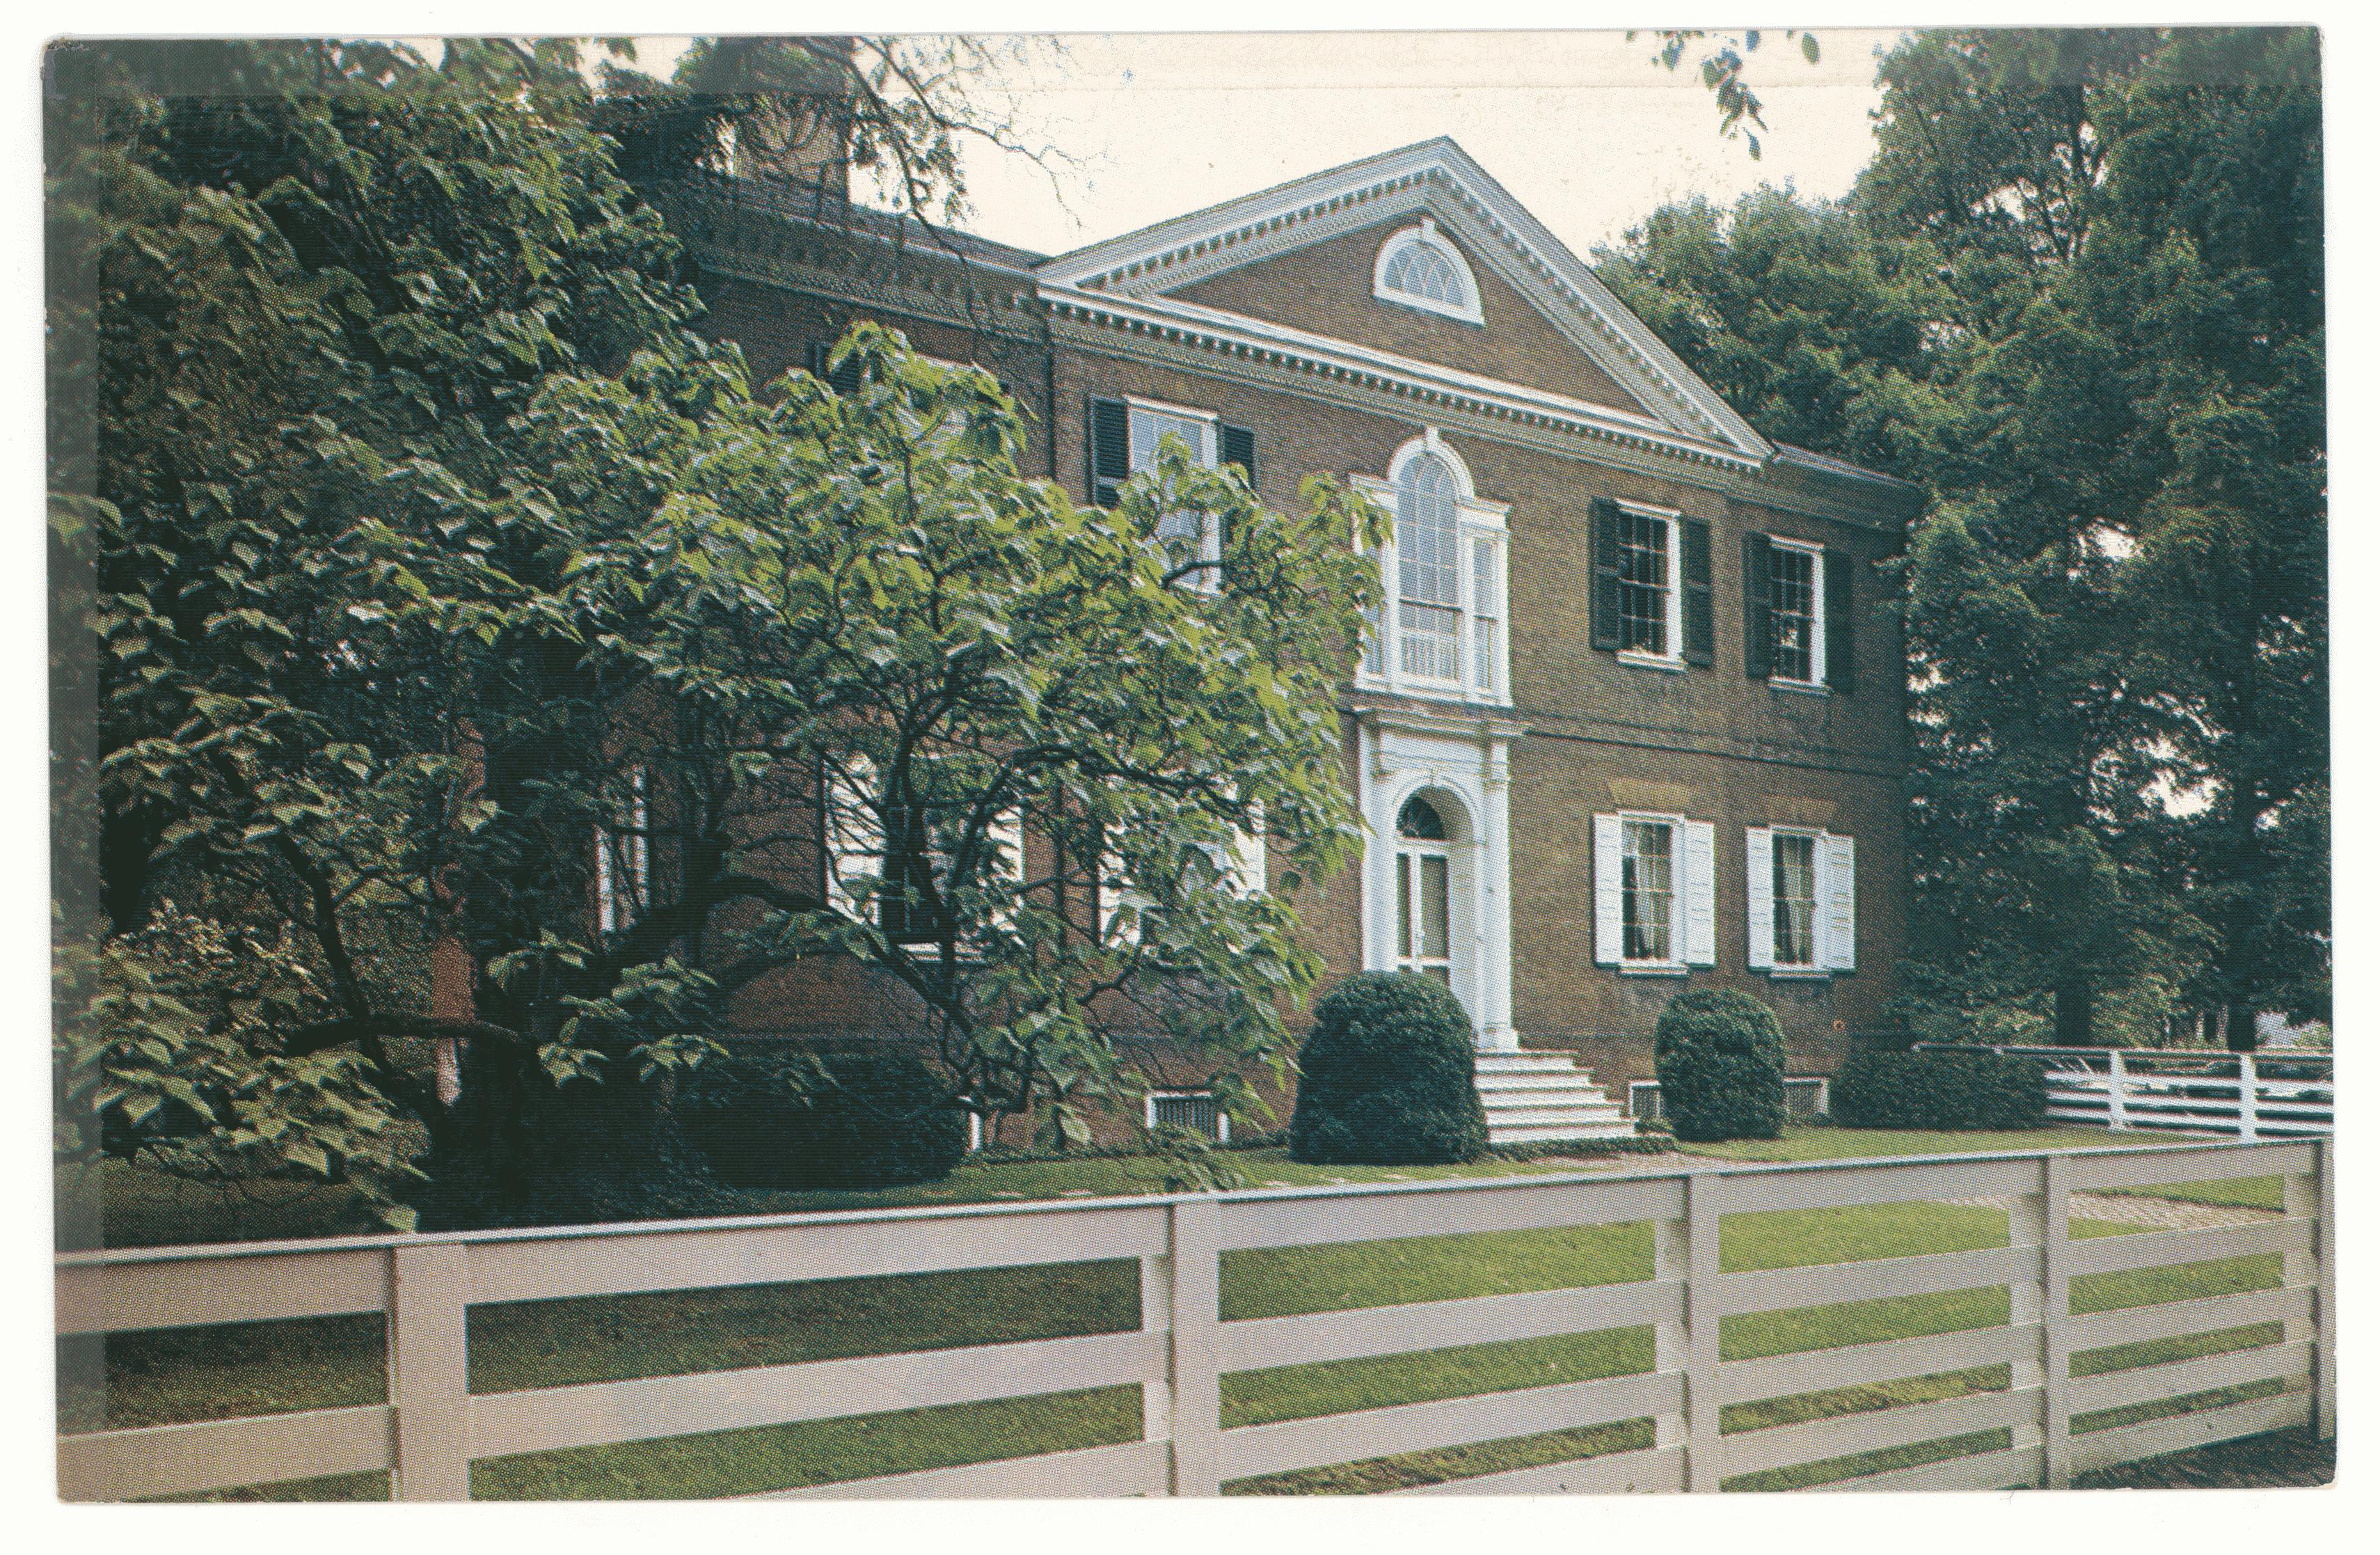 Central kentucky international cb club homes for sale